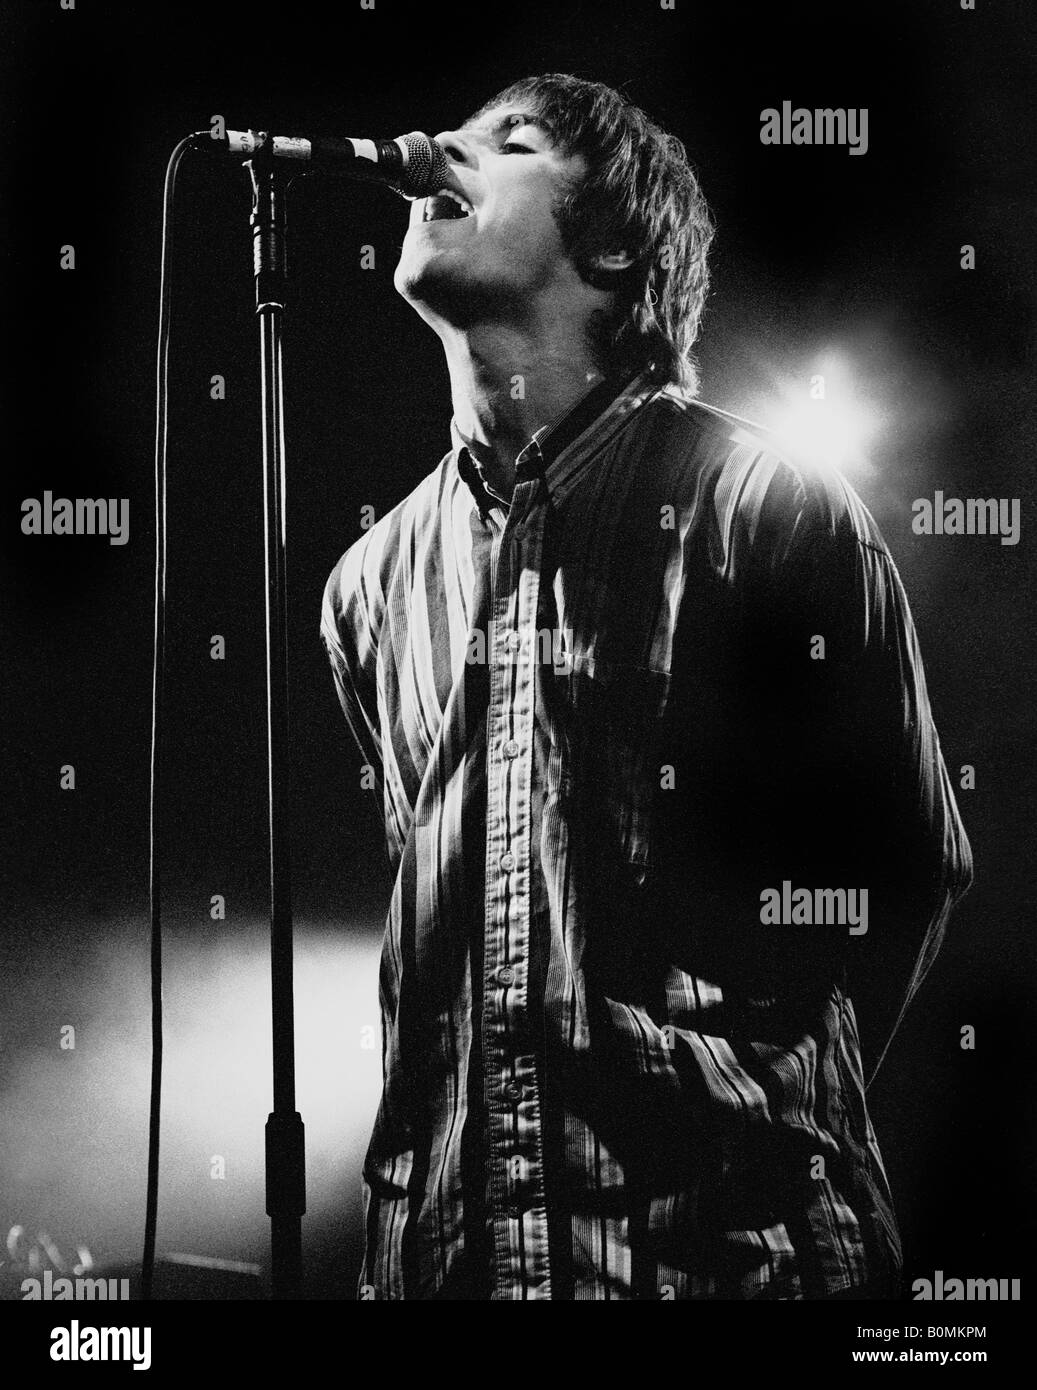 liam gallagher of Oasis, performing live at the Sheffield Octagon Centre, 1st December 1994 - Stock Image